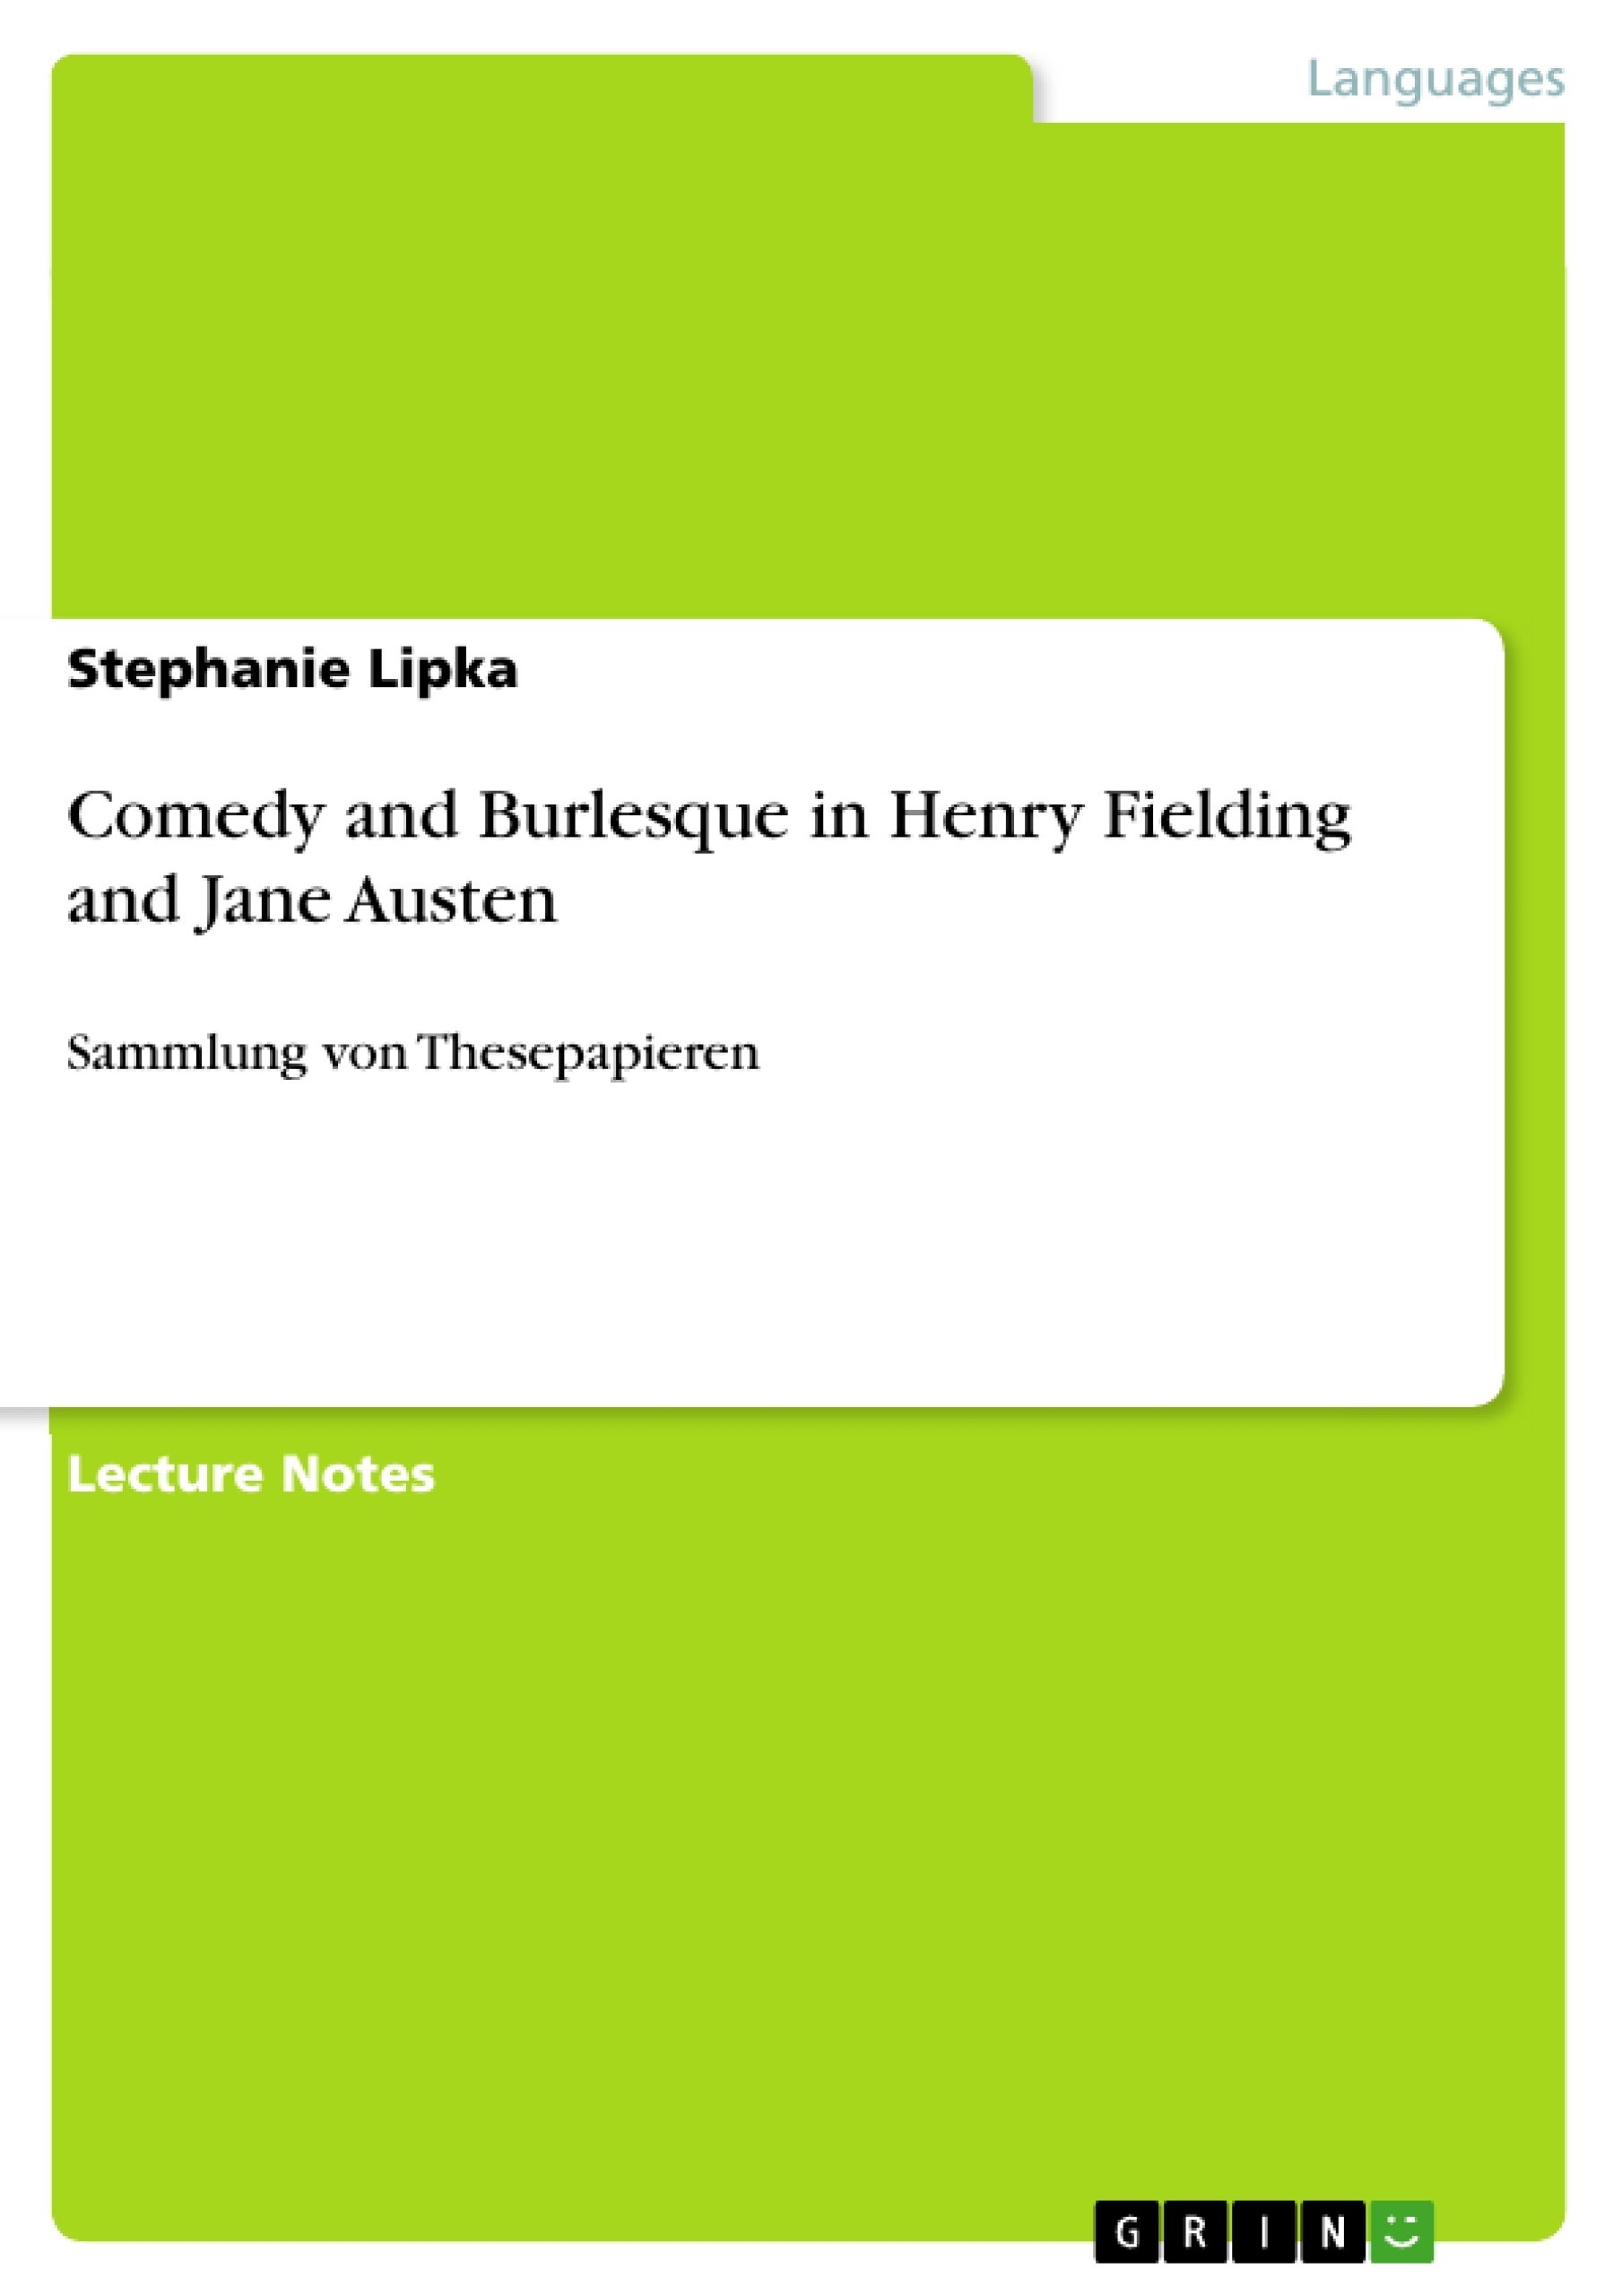 Title: Comedy and Burlesque in Henry Fielding and Jane Austen